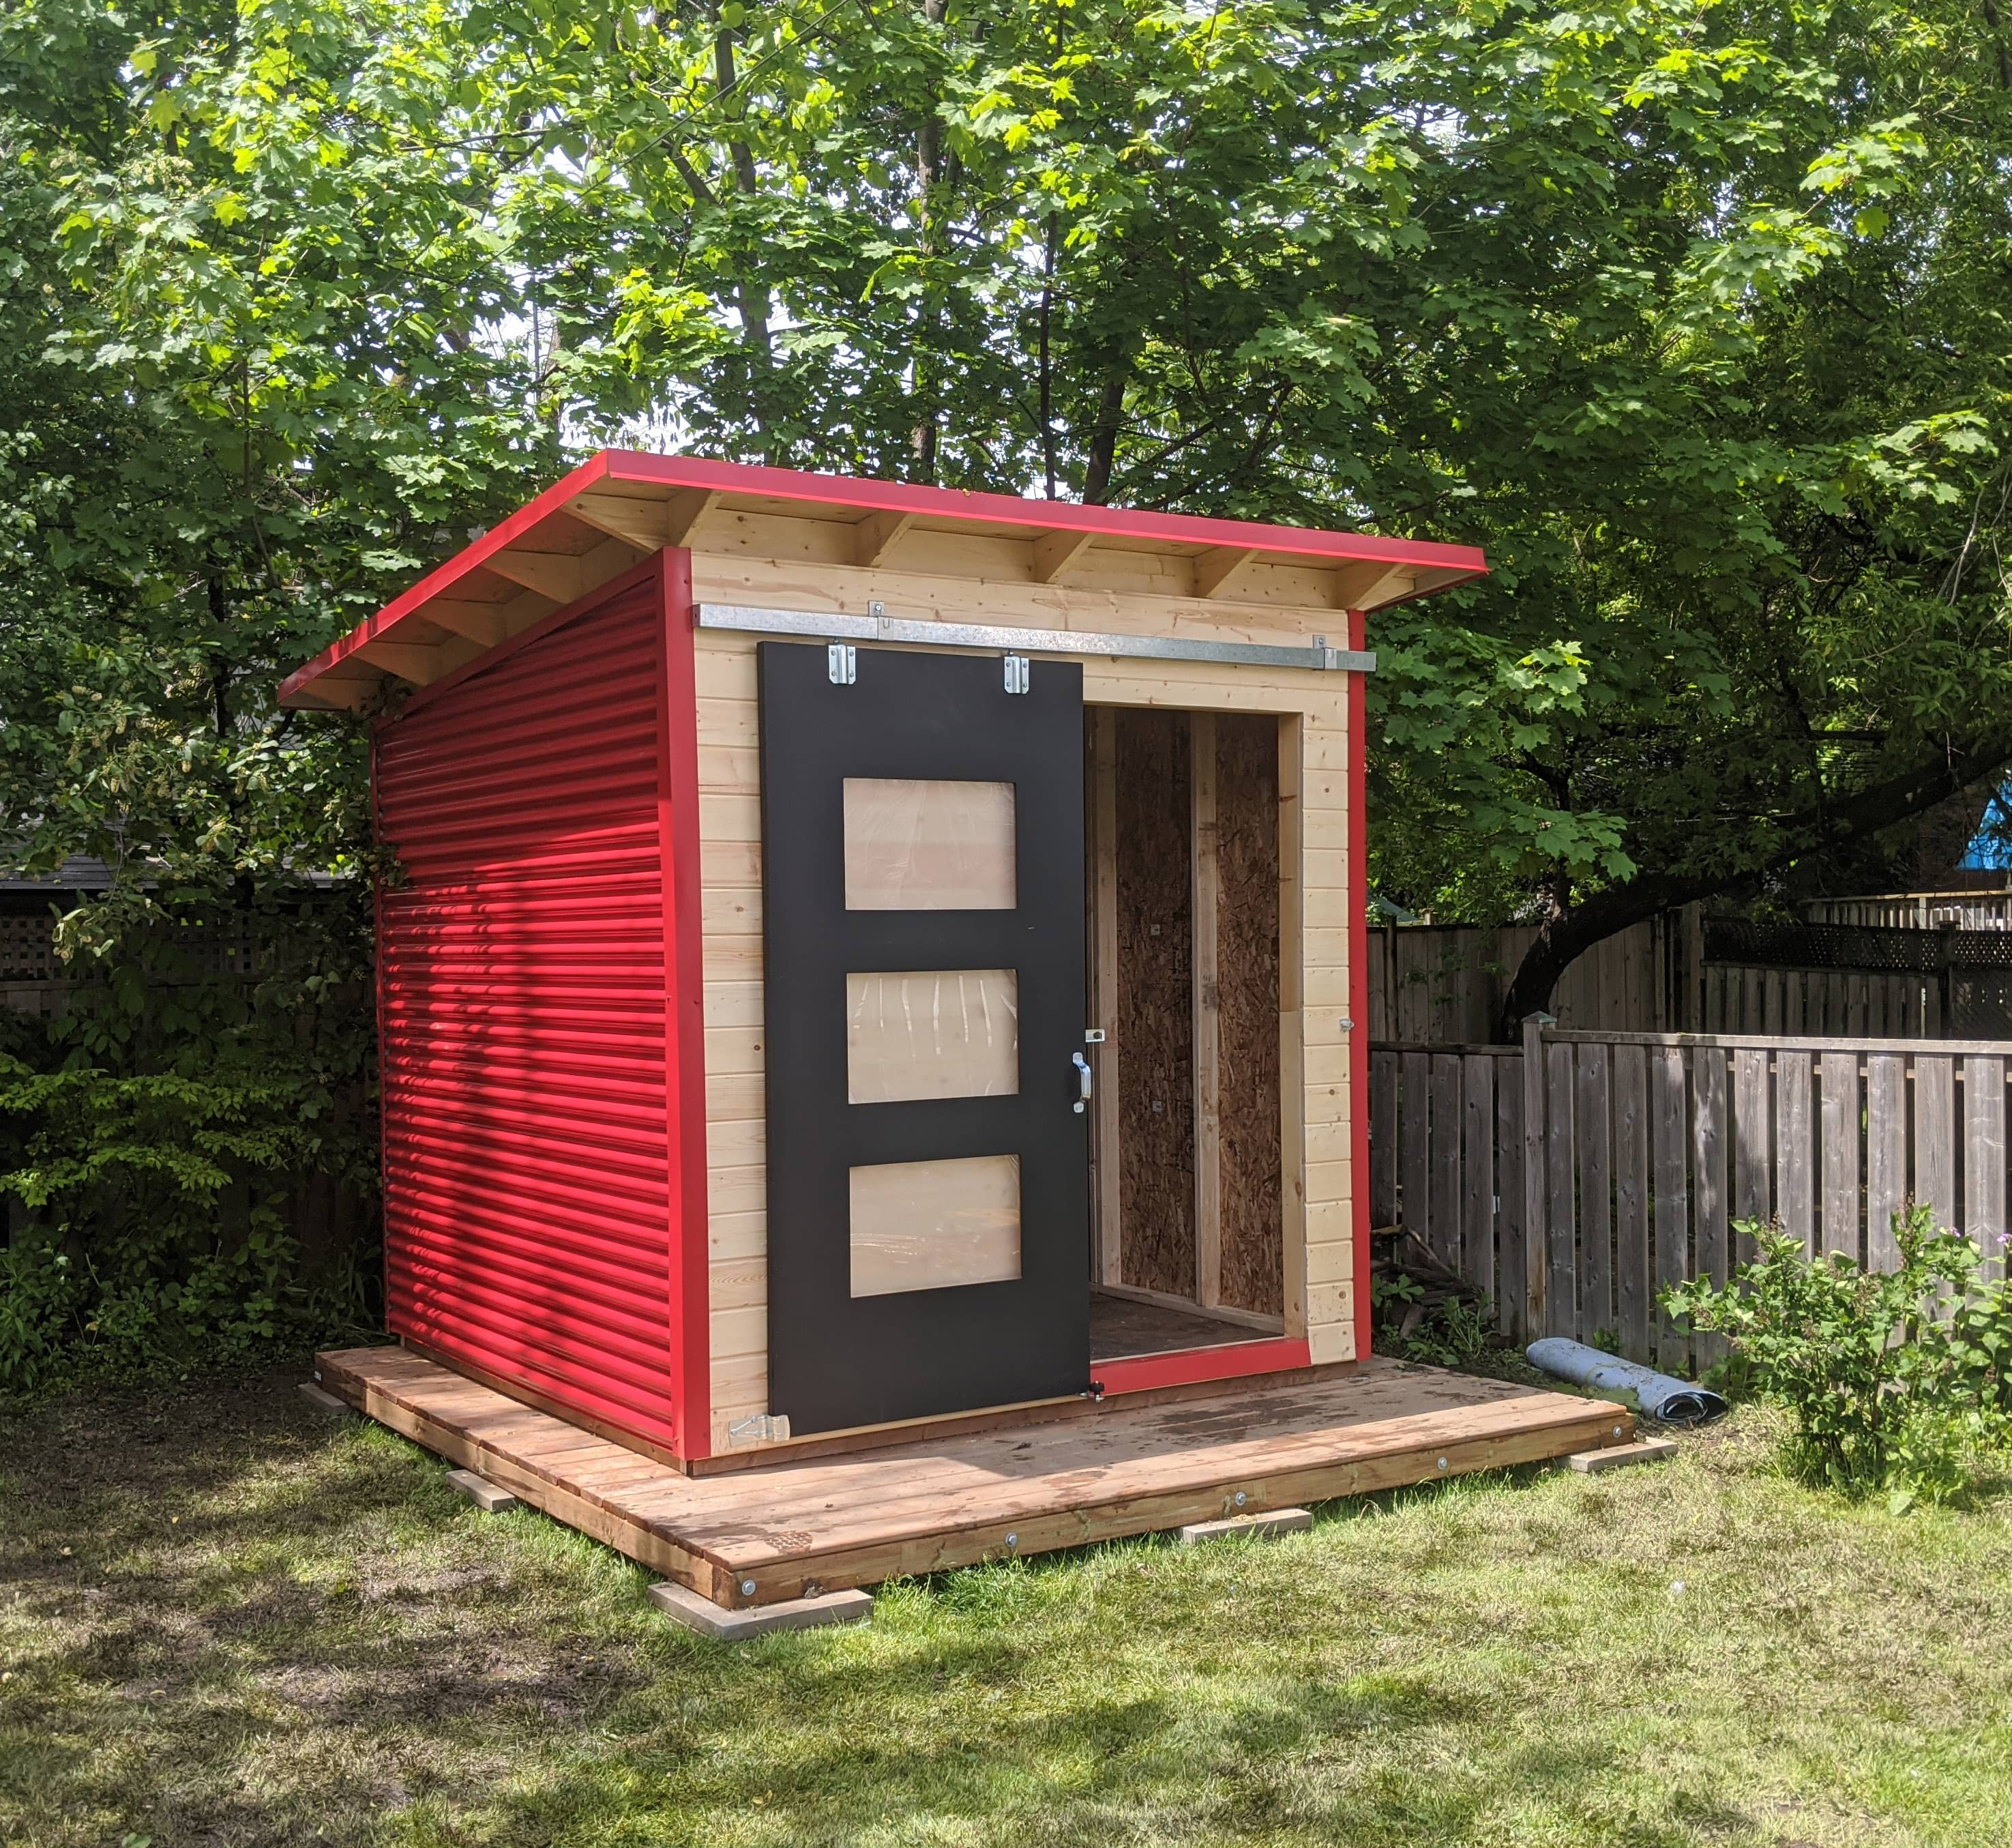 10' x 8' Essential Garden Shed with Clear-coated Pine and Red Steel